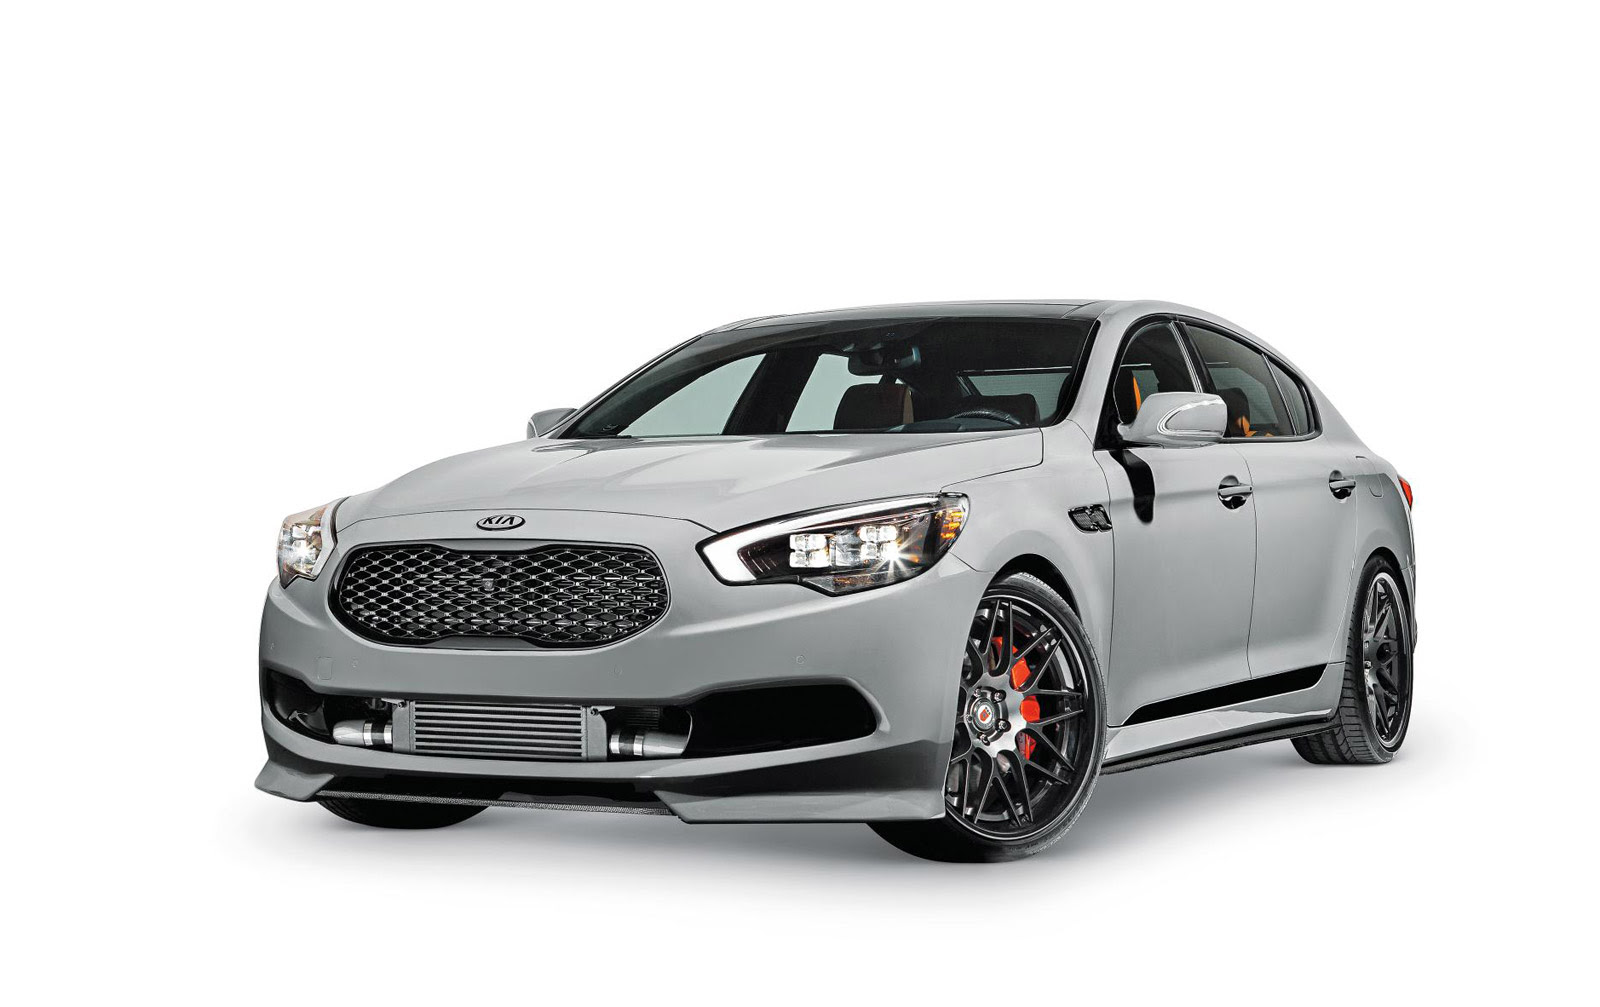 Kia Pumps Up The K900 For SEMA: Video